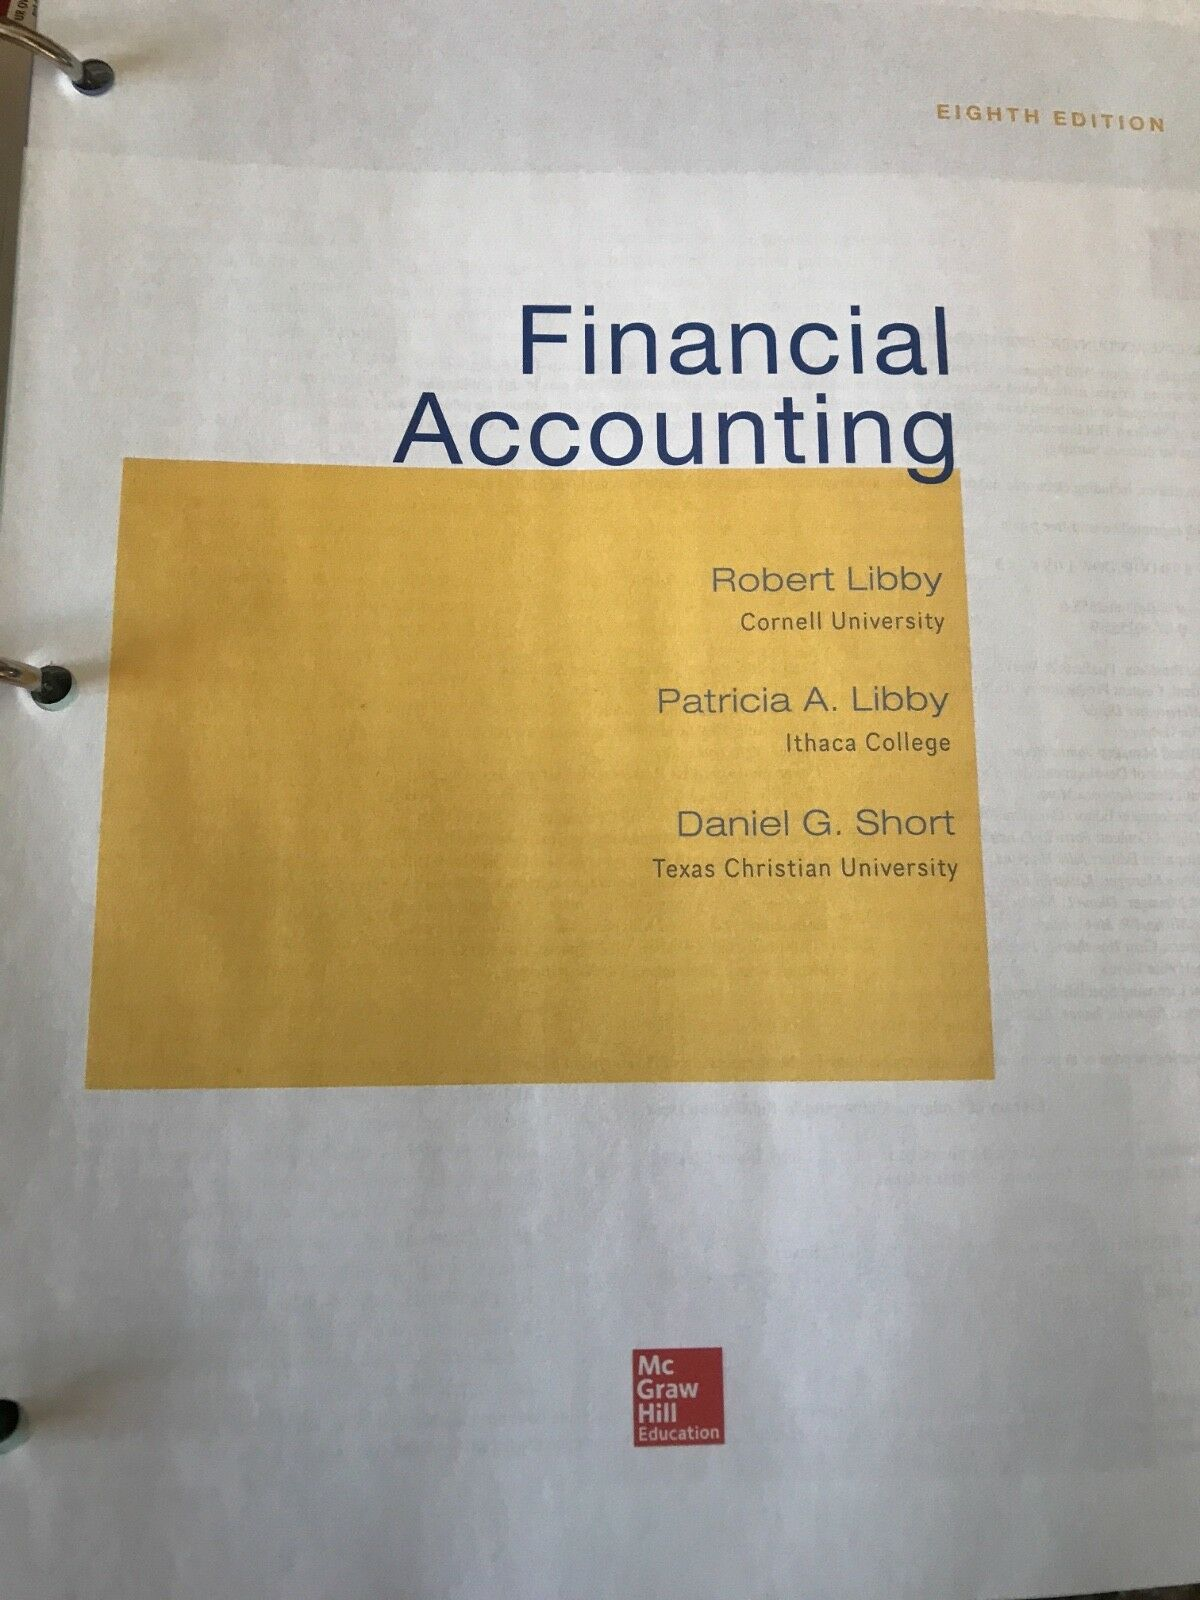 Financial accounting by patricia libby robert libby and daniel financial accounting by patricia libby robert libby and daniel short 2013 hardcover 8th edition ebay fandeluxe Choice Image